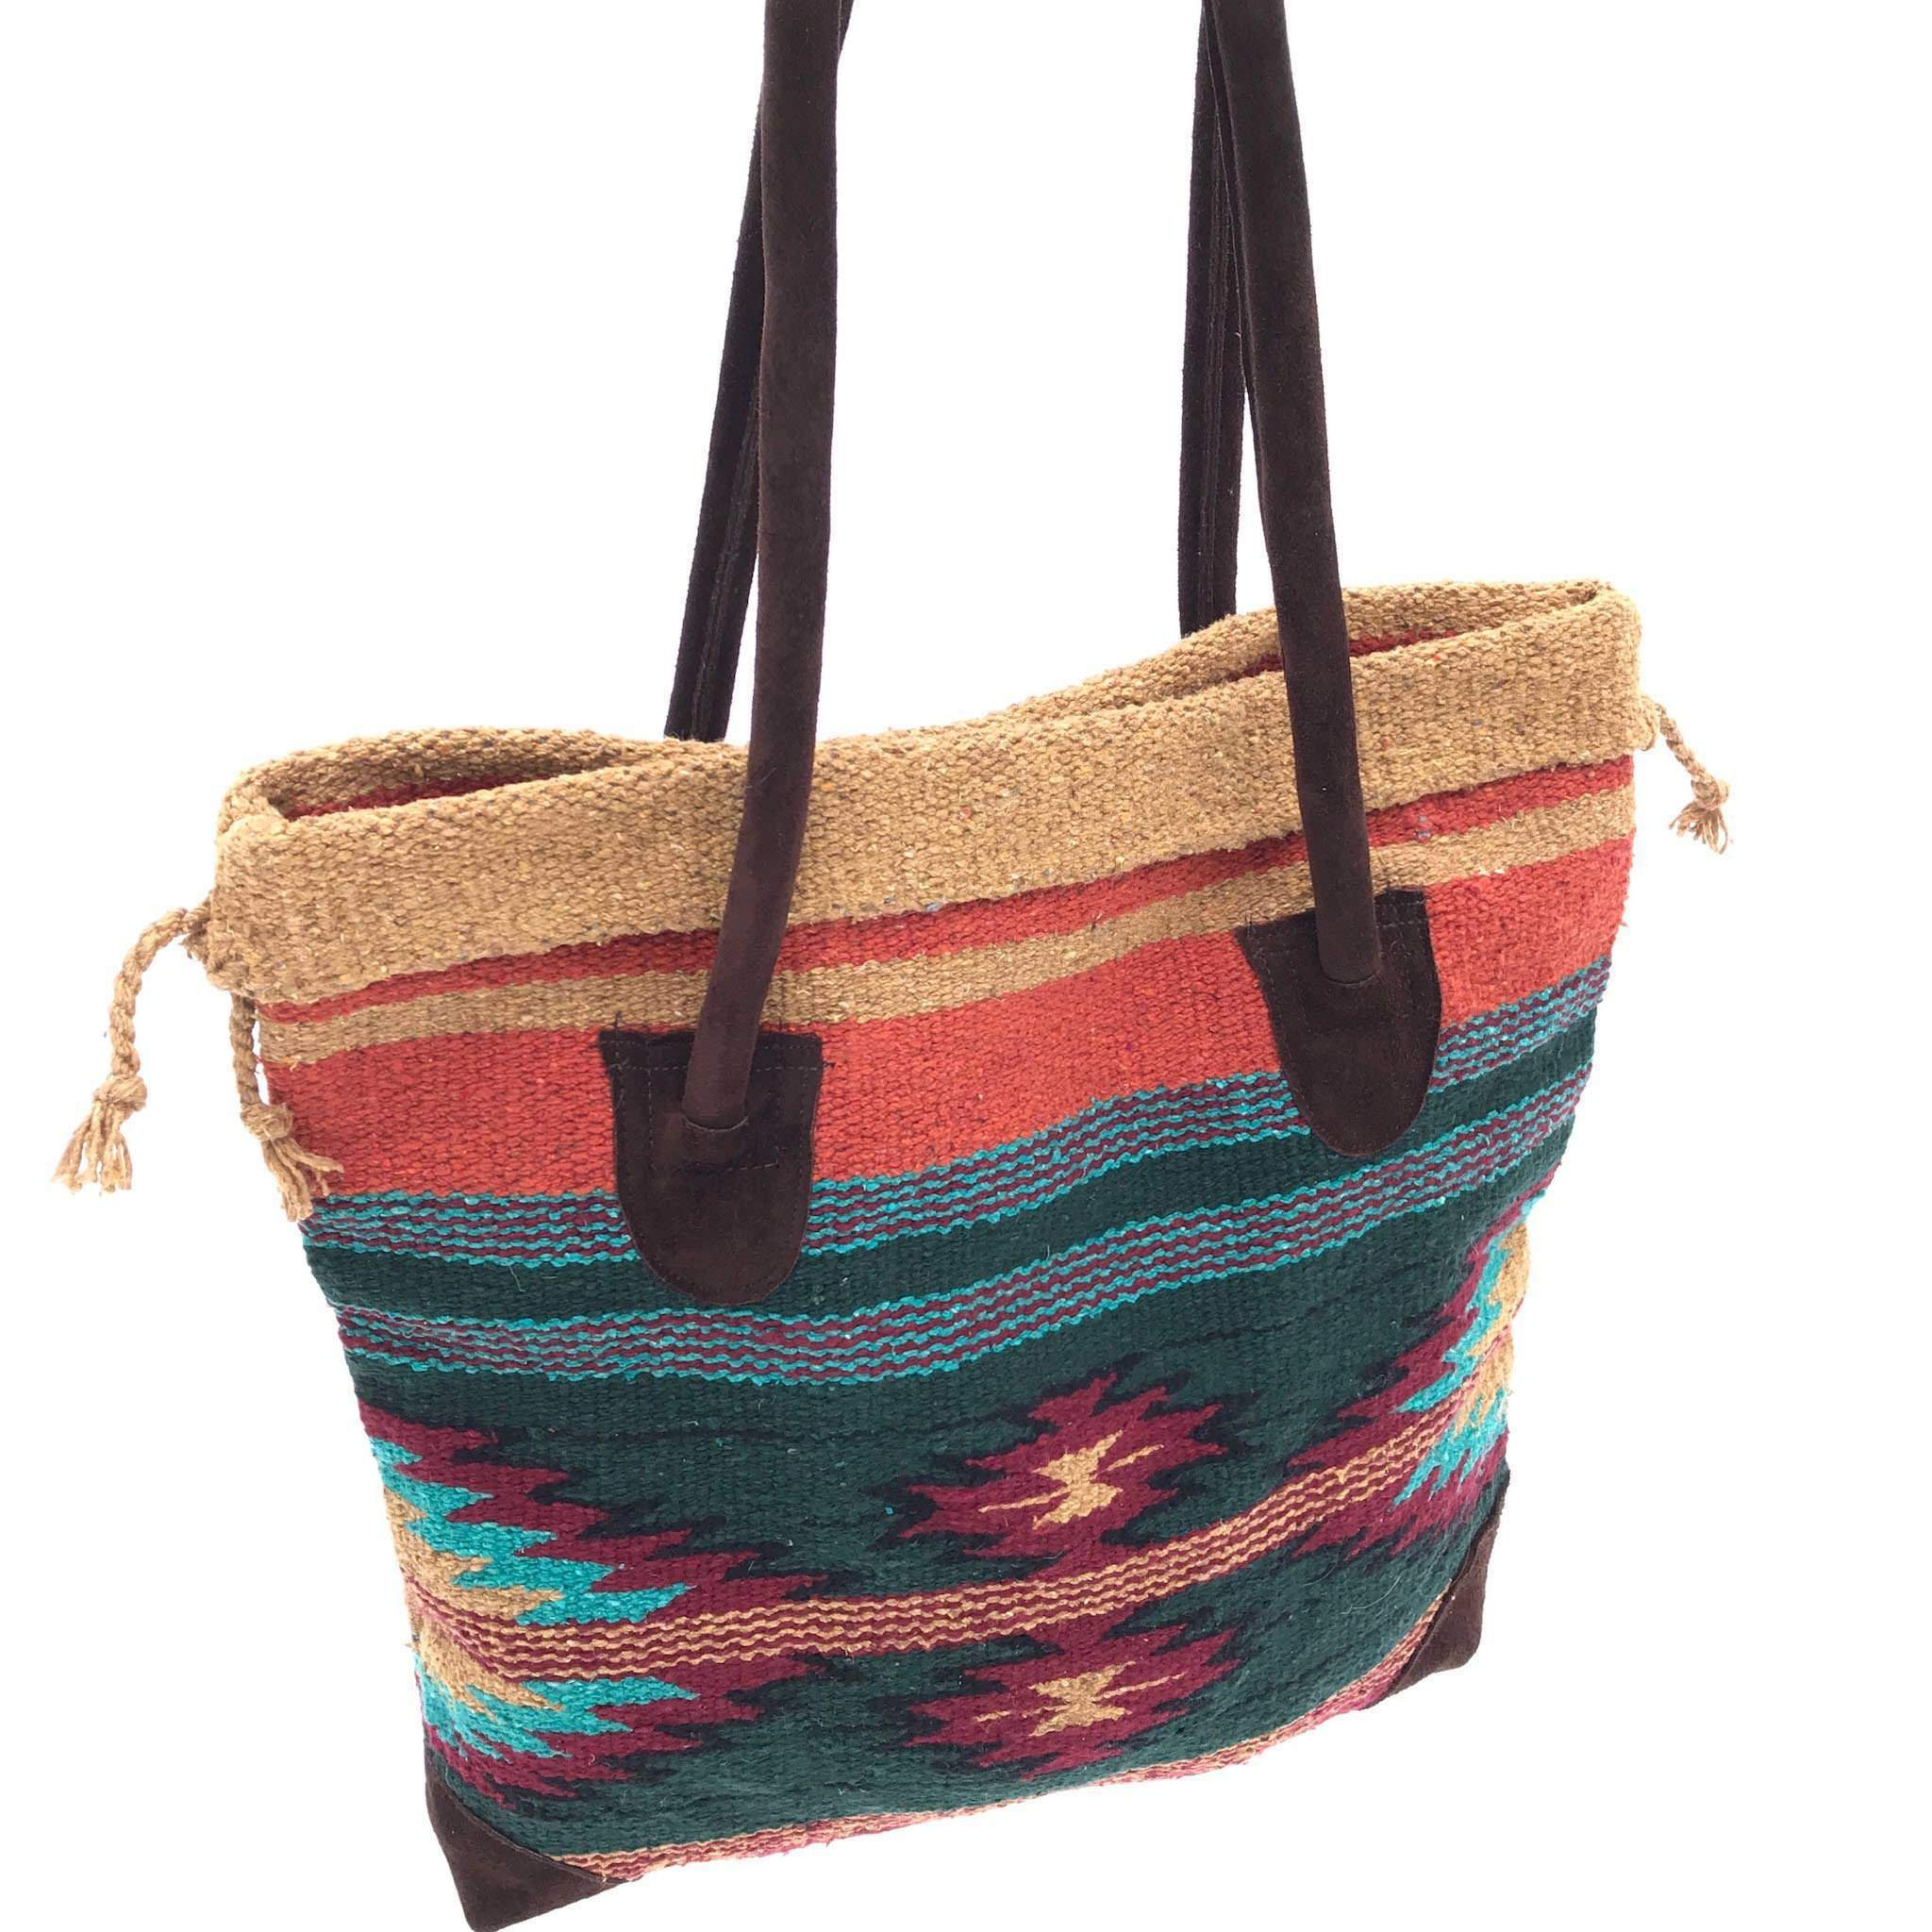 Square tote bag made from woven material, primarily dark green with diamond design in burgundy, turquoise, gold and black, with accent stripes in the same colors, handles and bottom corners in dark brown suede, shown against white background.